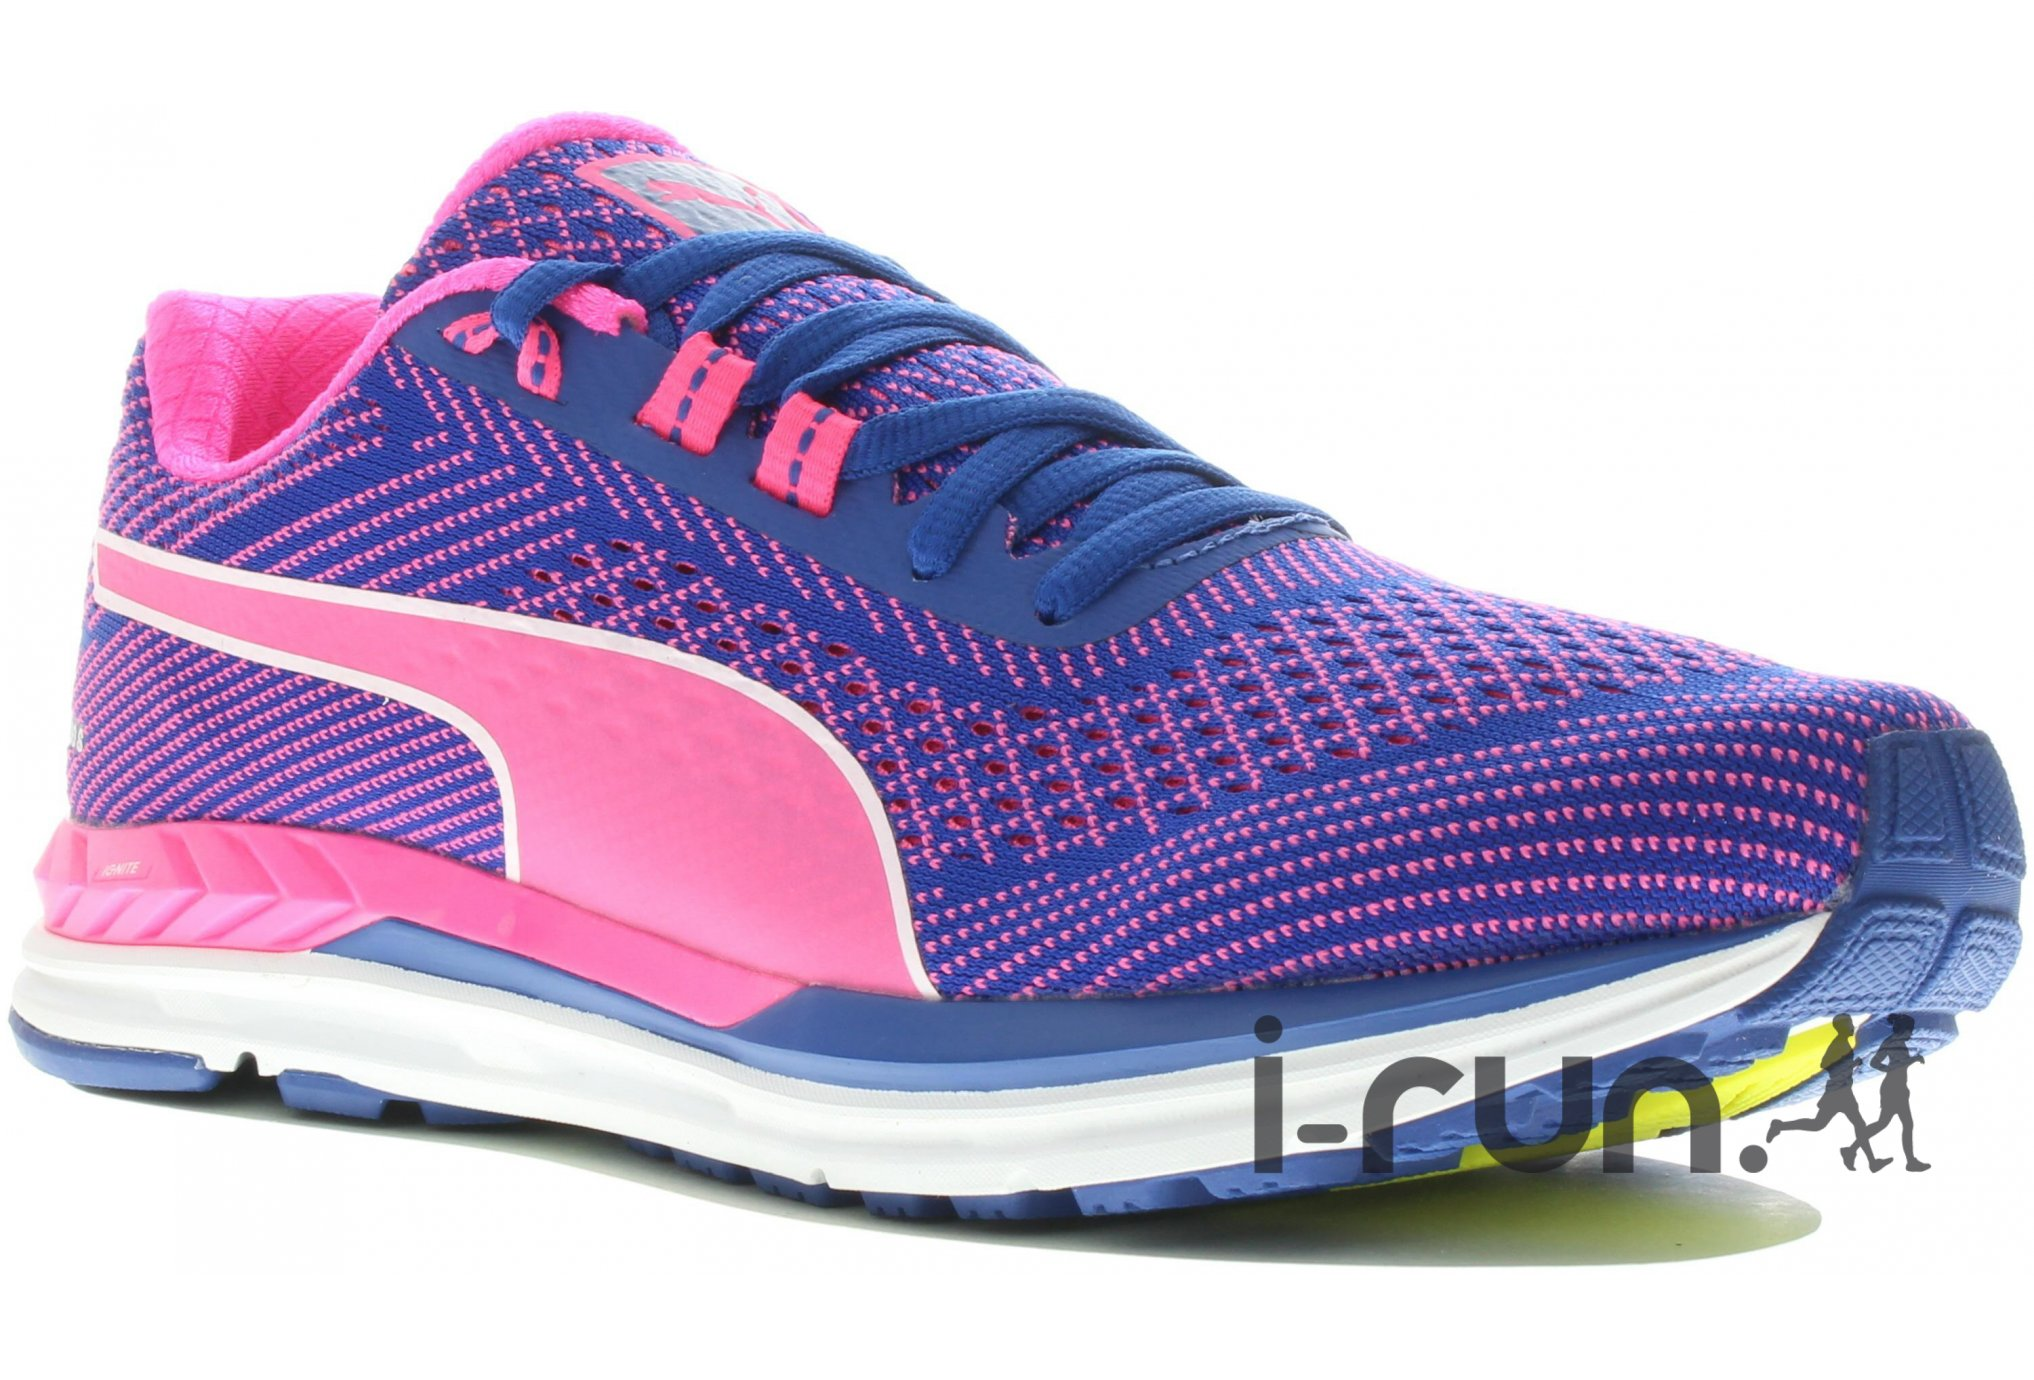 Speed 600 Running Femme Chaussures Trail S W Puma Session Ignite XPiZuOk